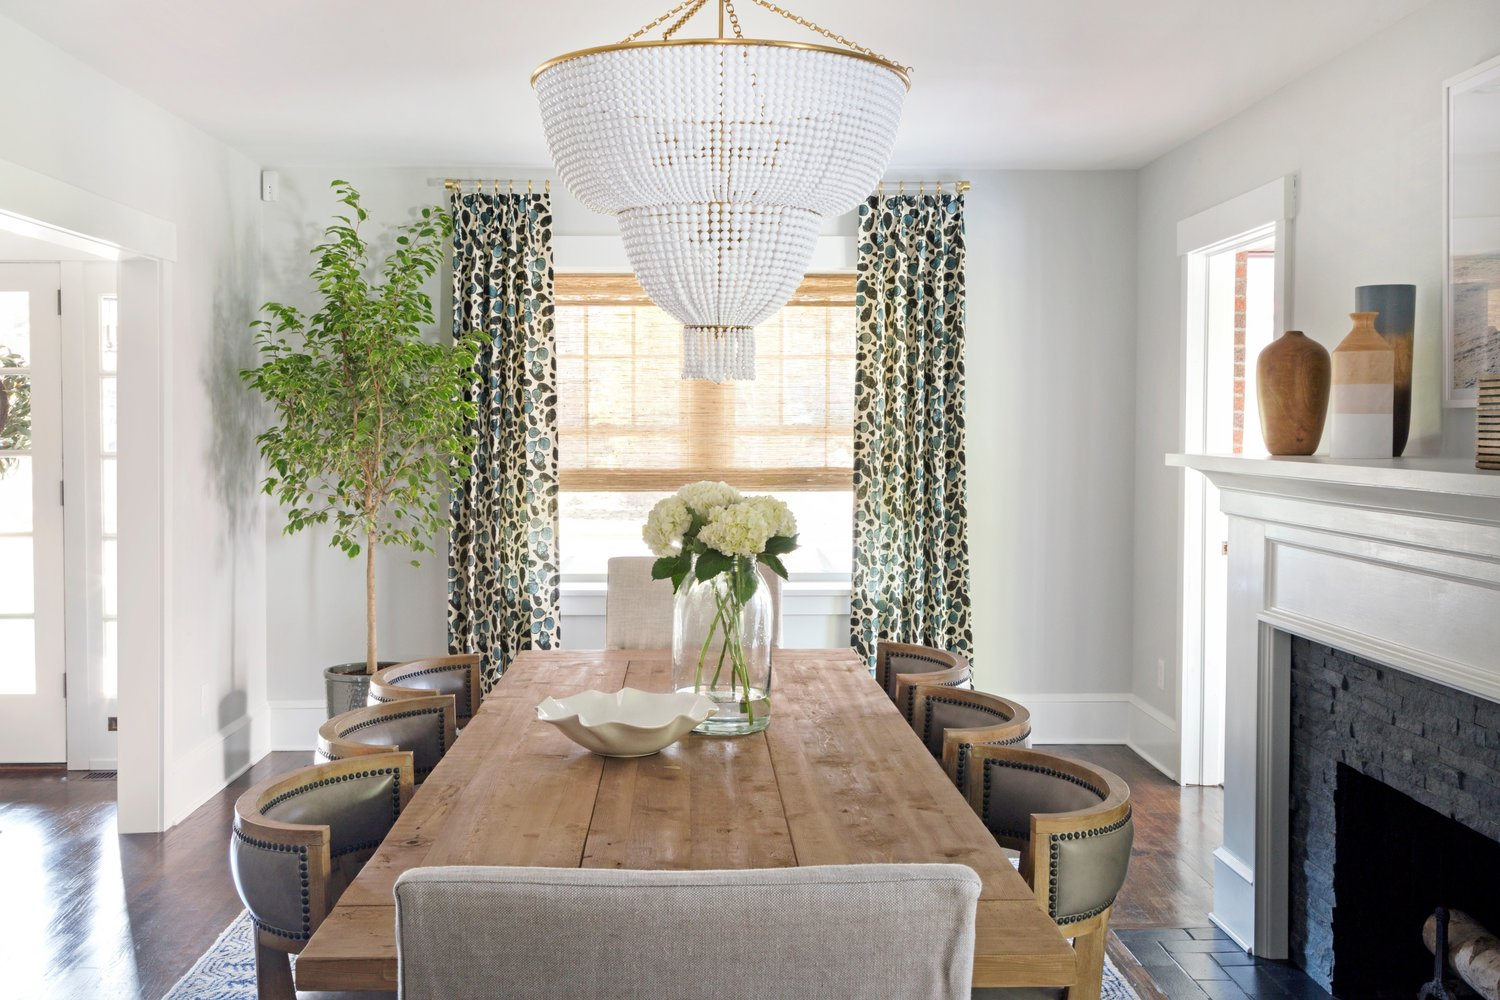 Dining room table in front of vertical window